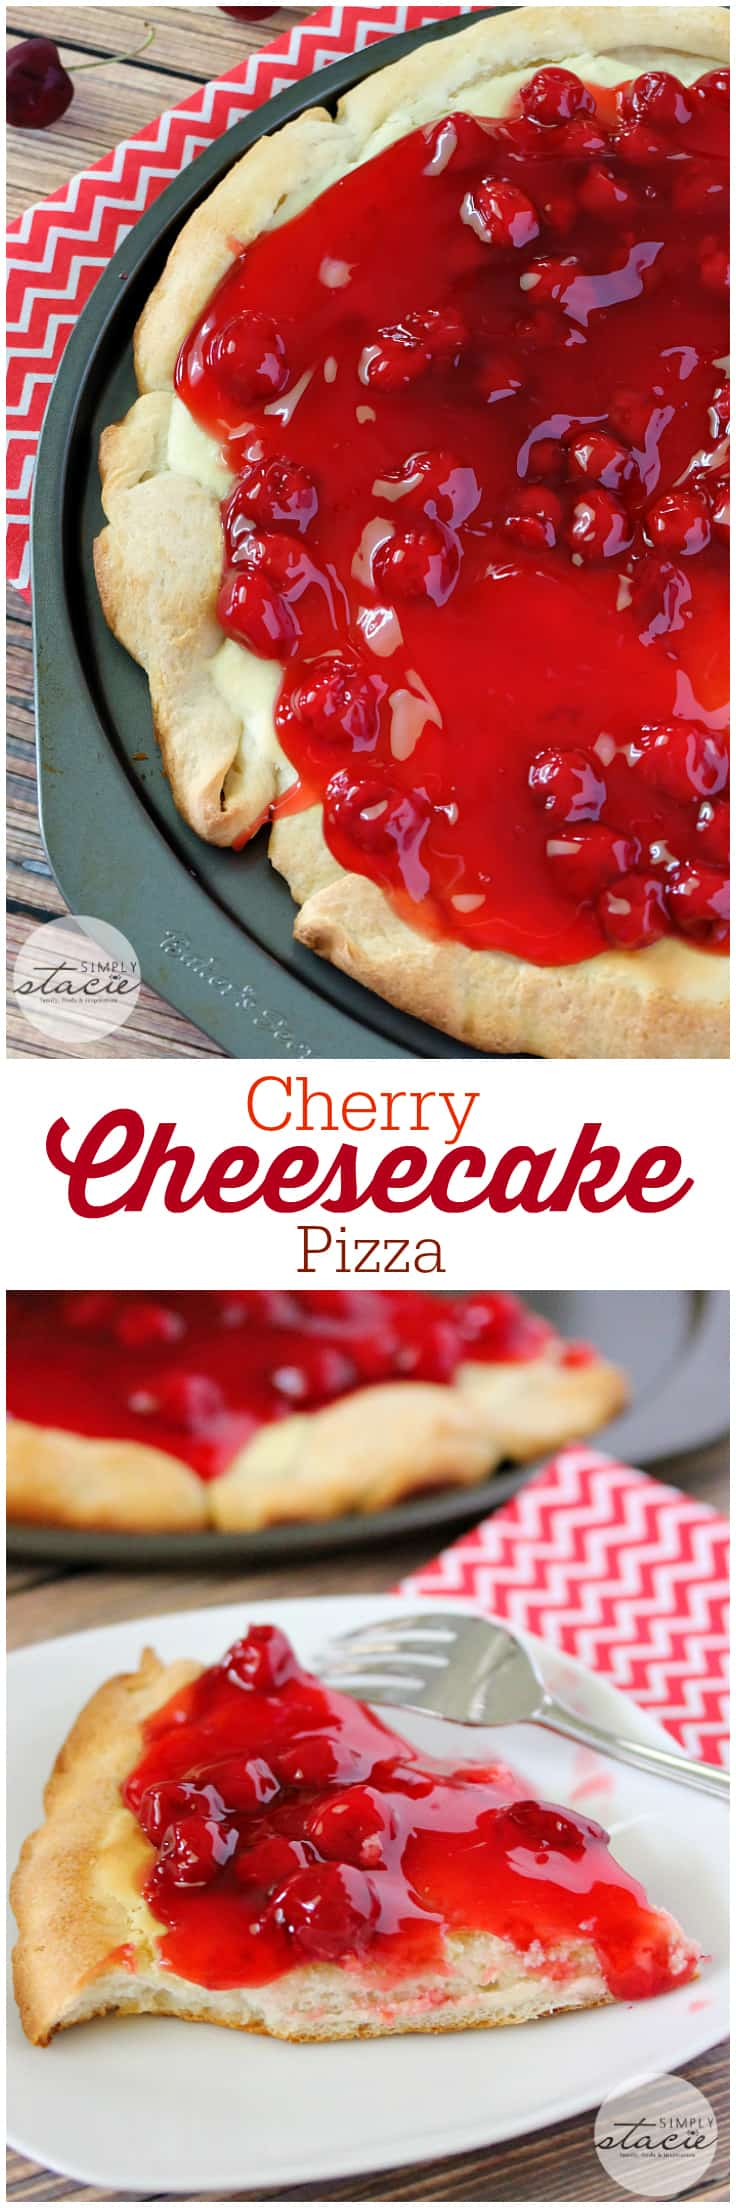 Cherry Cheesecake Pizza - NYC's favorites combined for the best dessert pizza! Smooth cheesecake filling covered with cherries in a thick, sweet syrup is a perfect handheld dessert for your next party.